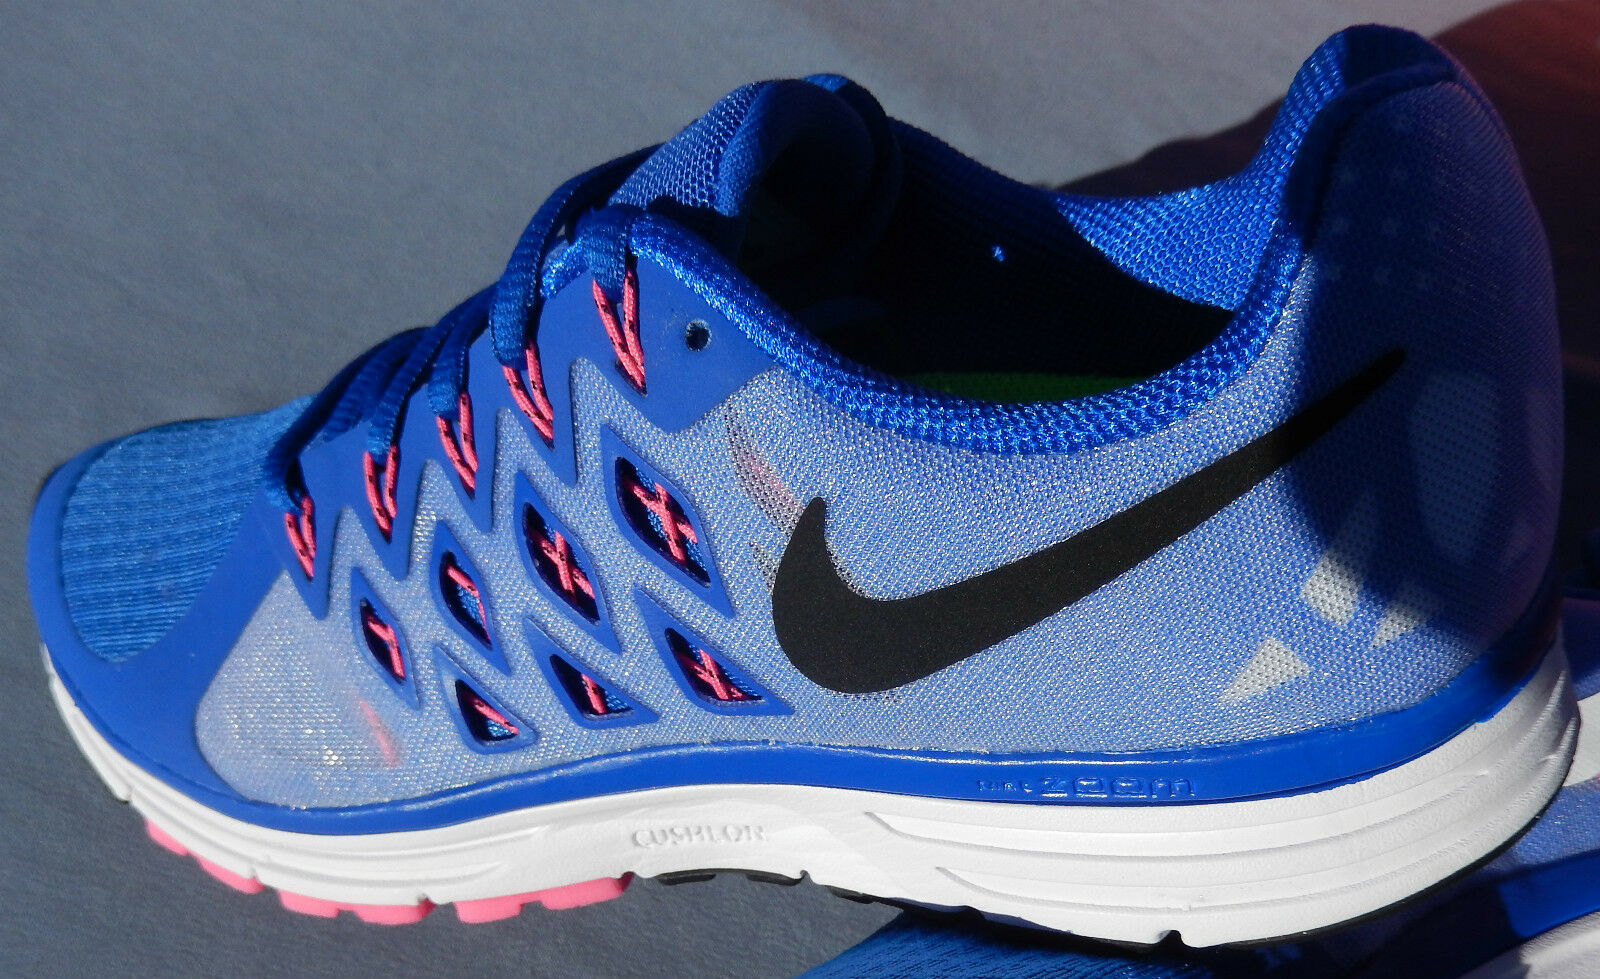 NIKE WOMENS ZOOM VOMERO 9 SIZE 6.5  BLUE 642196-400 RUNNING TRAINER Blue